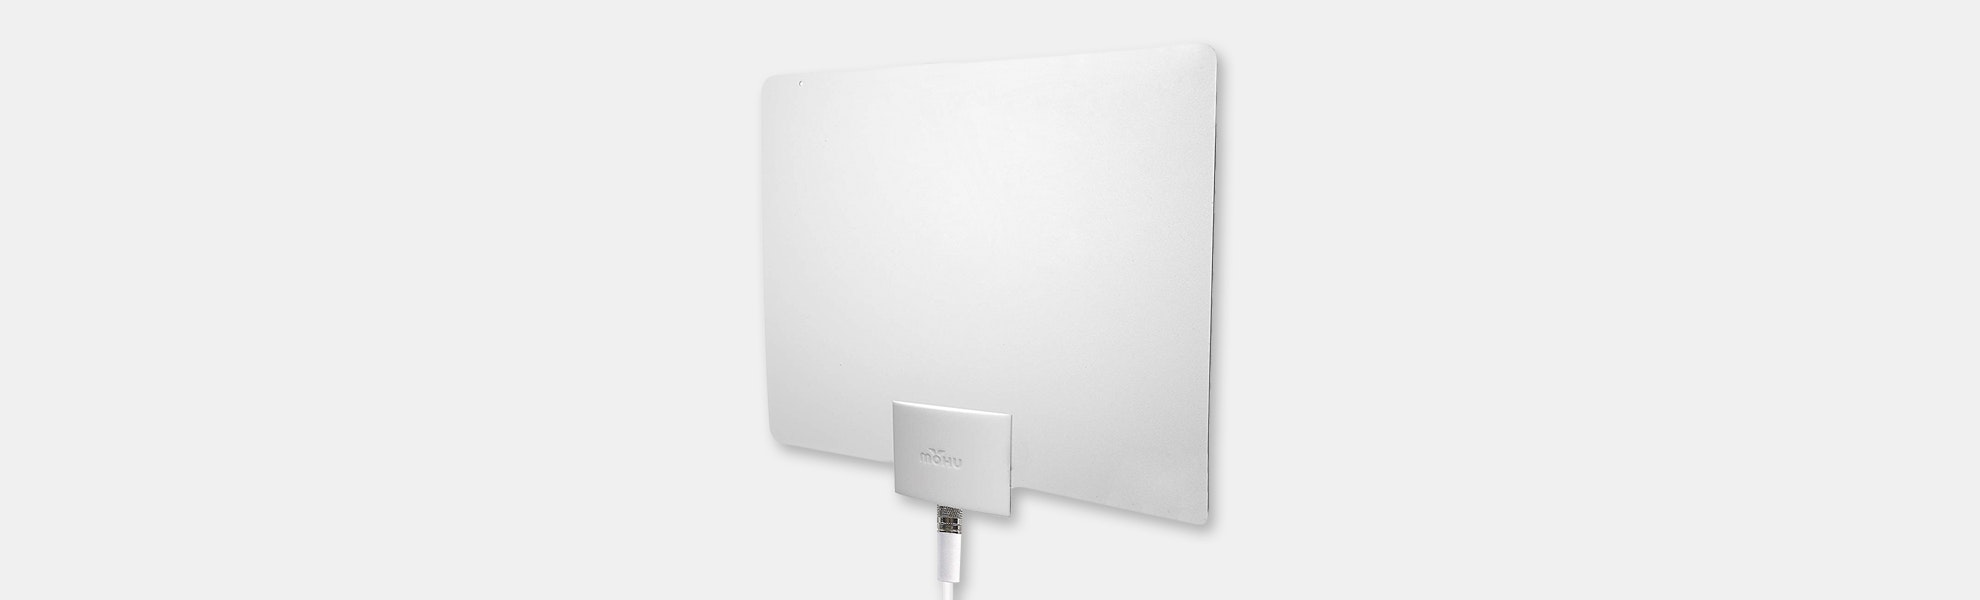 Mohu Indoor/Outdoor HDTV Antennas